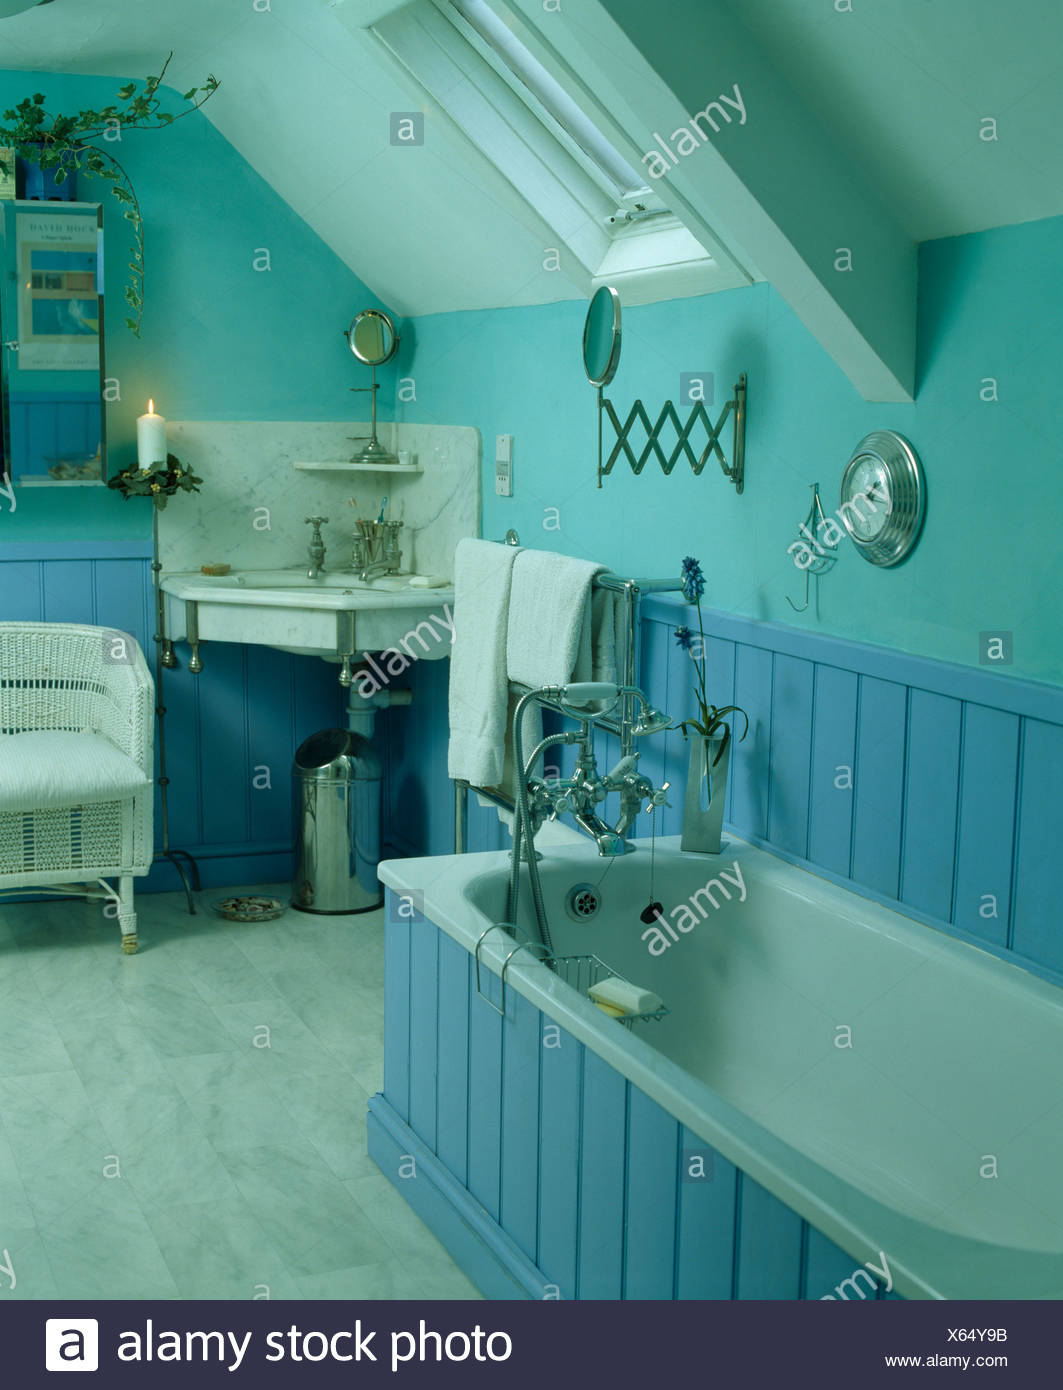 Blue panelled bath in pastel turquoise bathroom Stock Photo ...